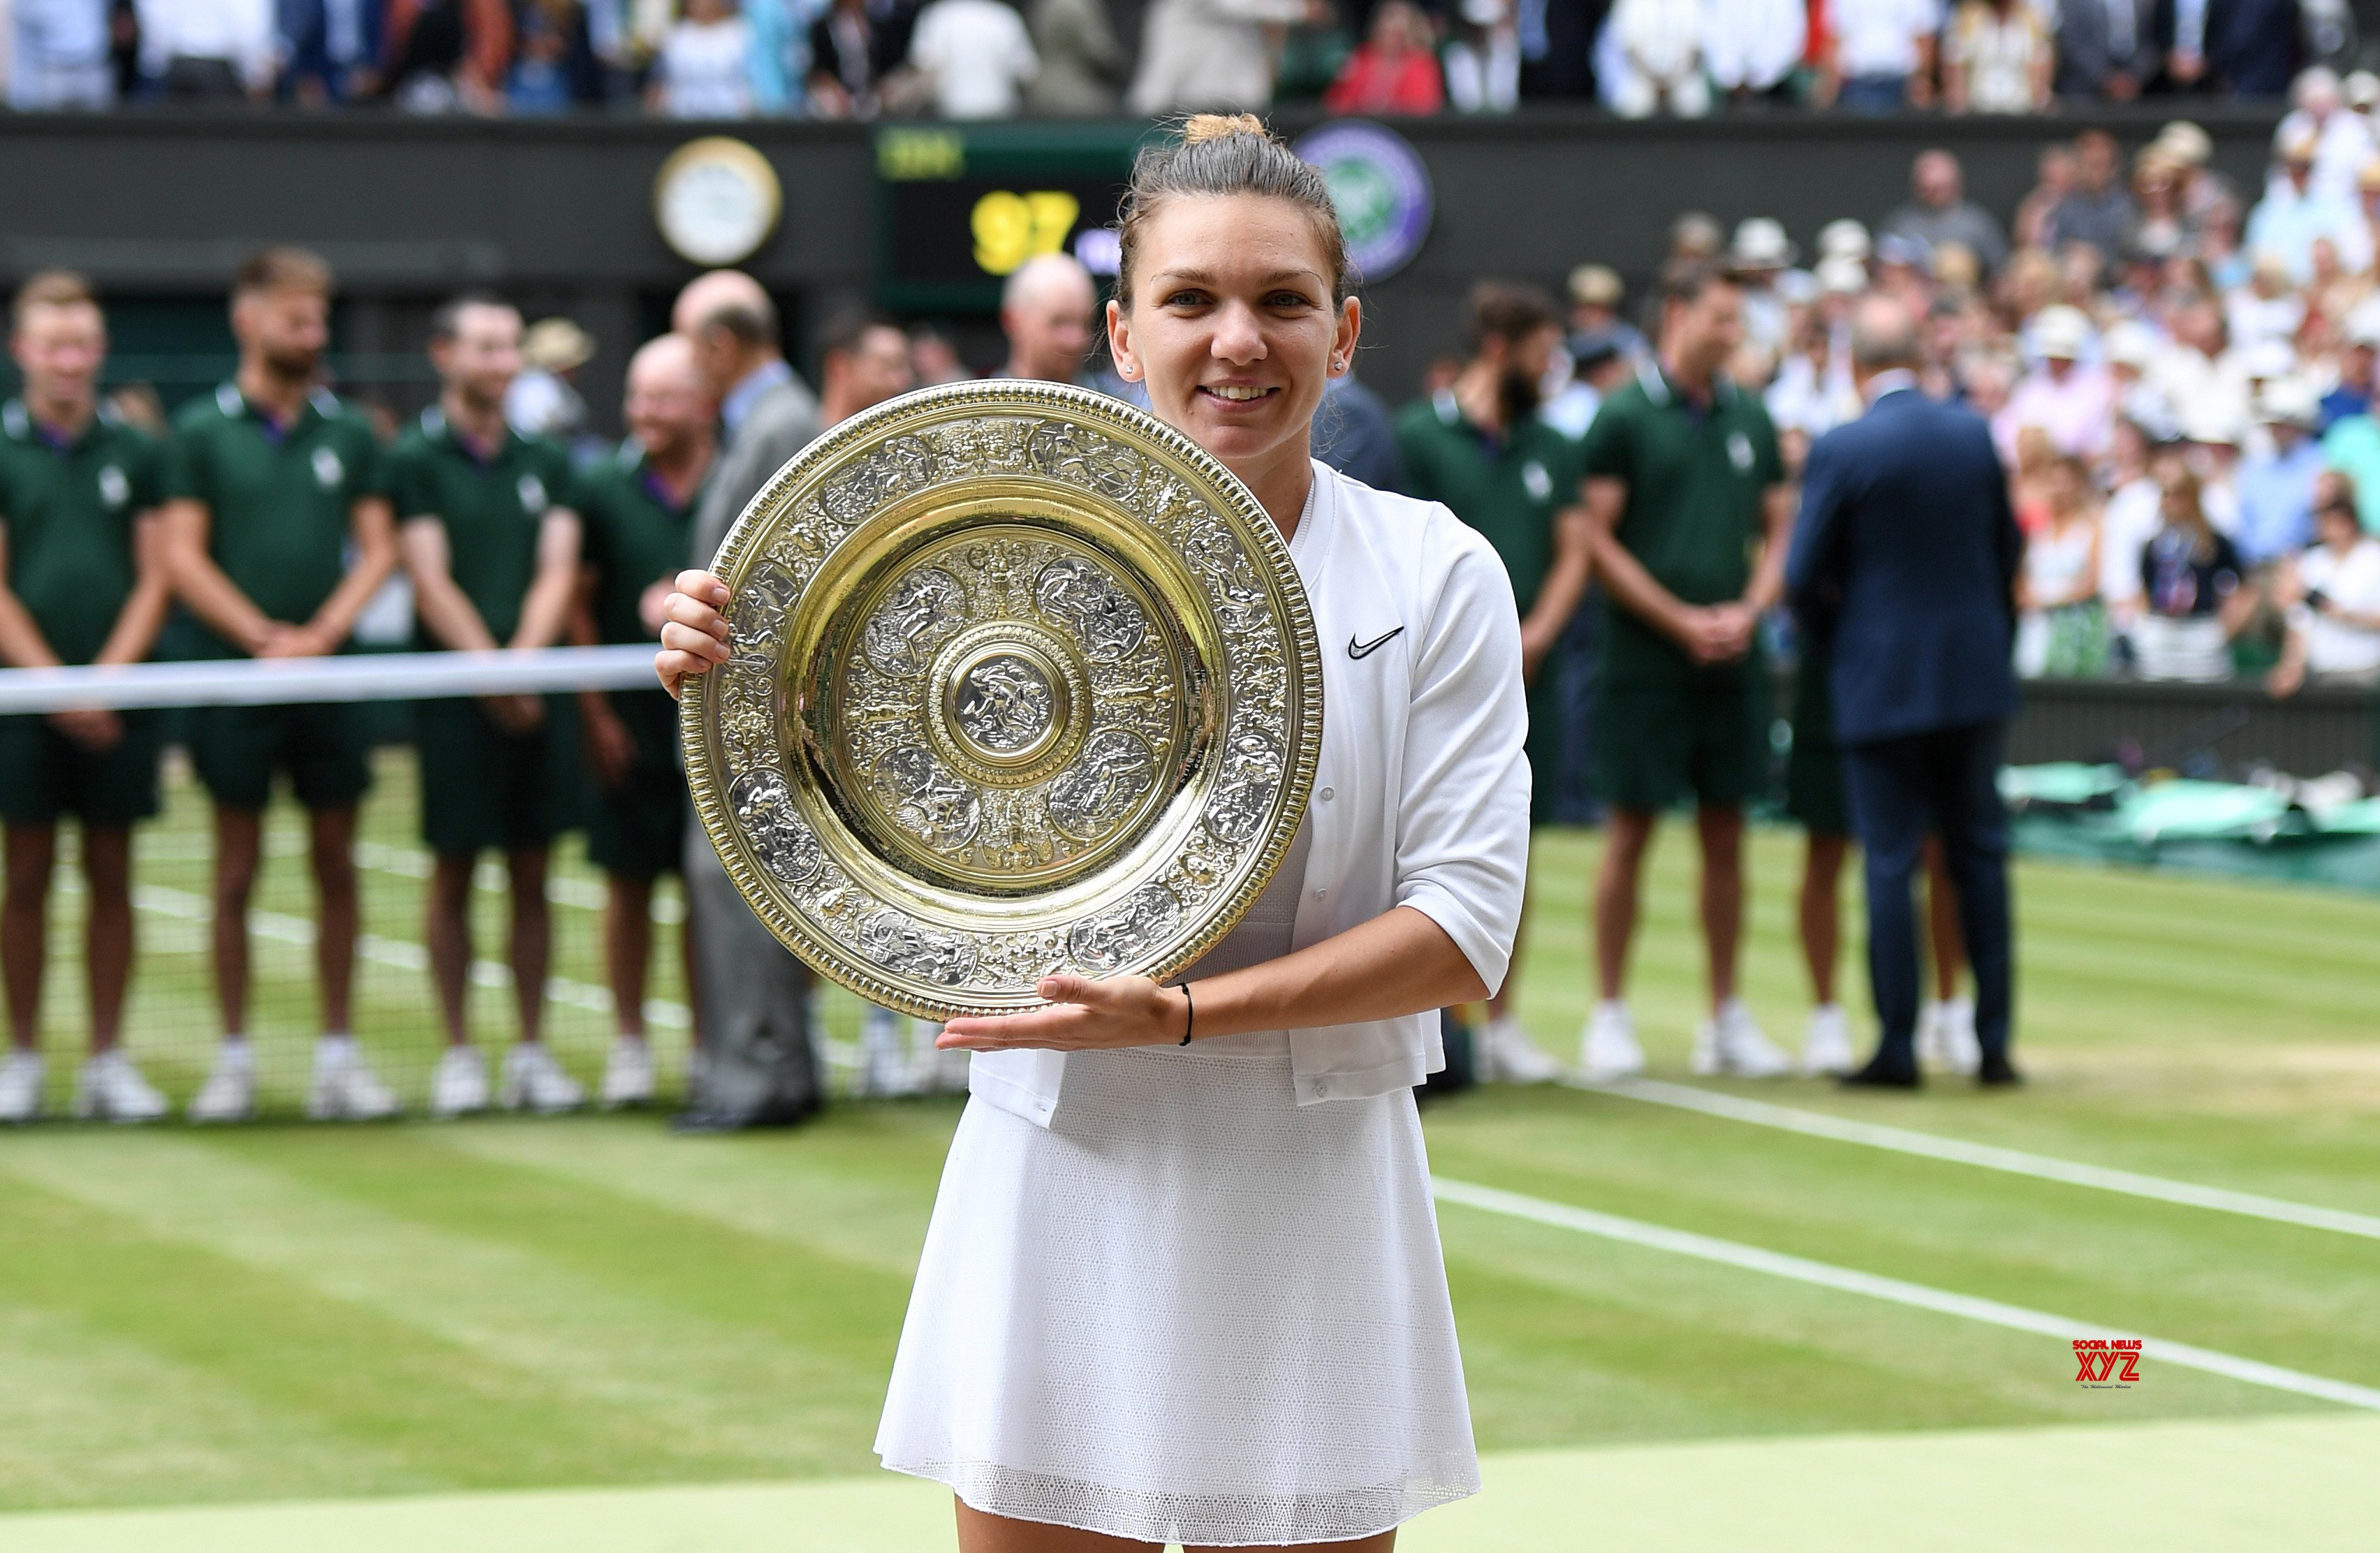 Halep crushes Serena to win maiden Wimbledon title